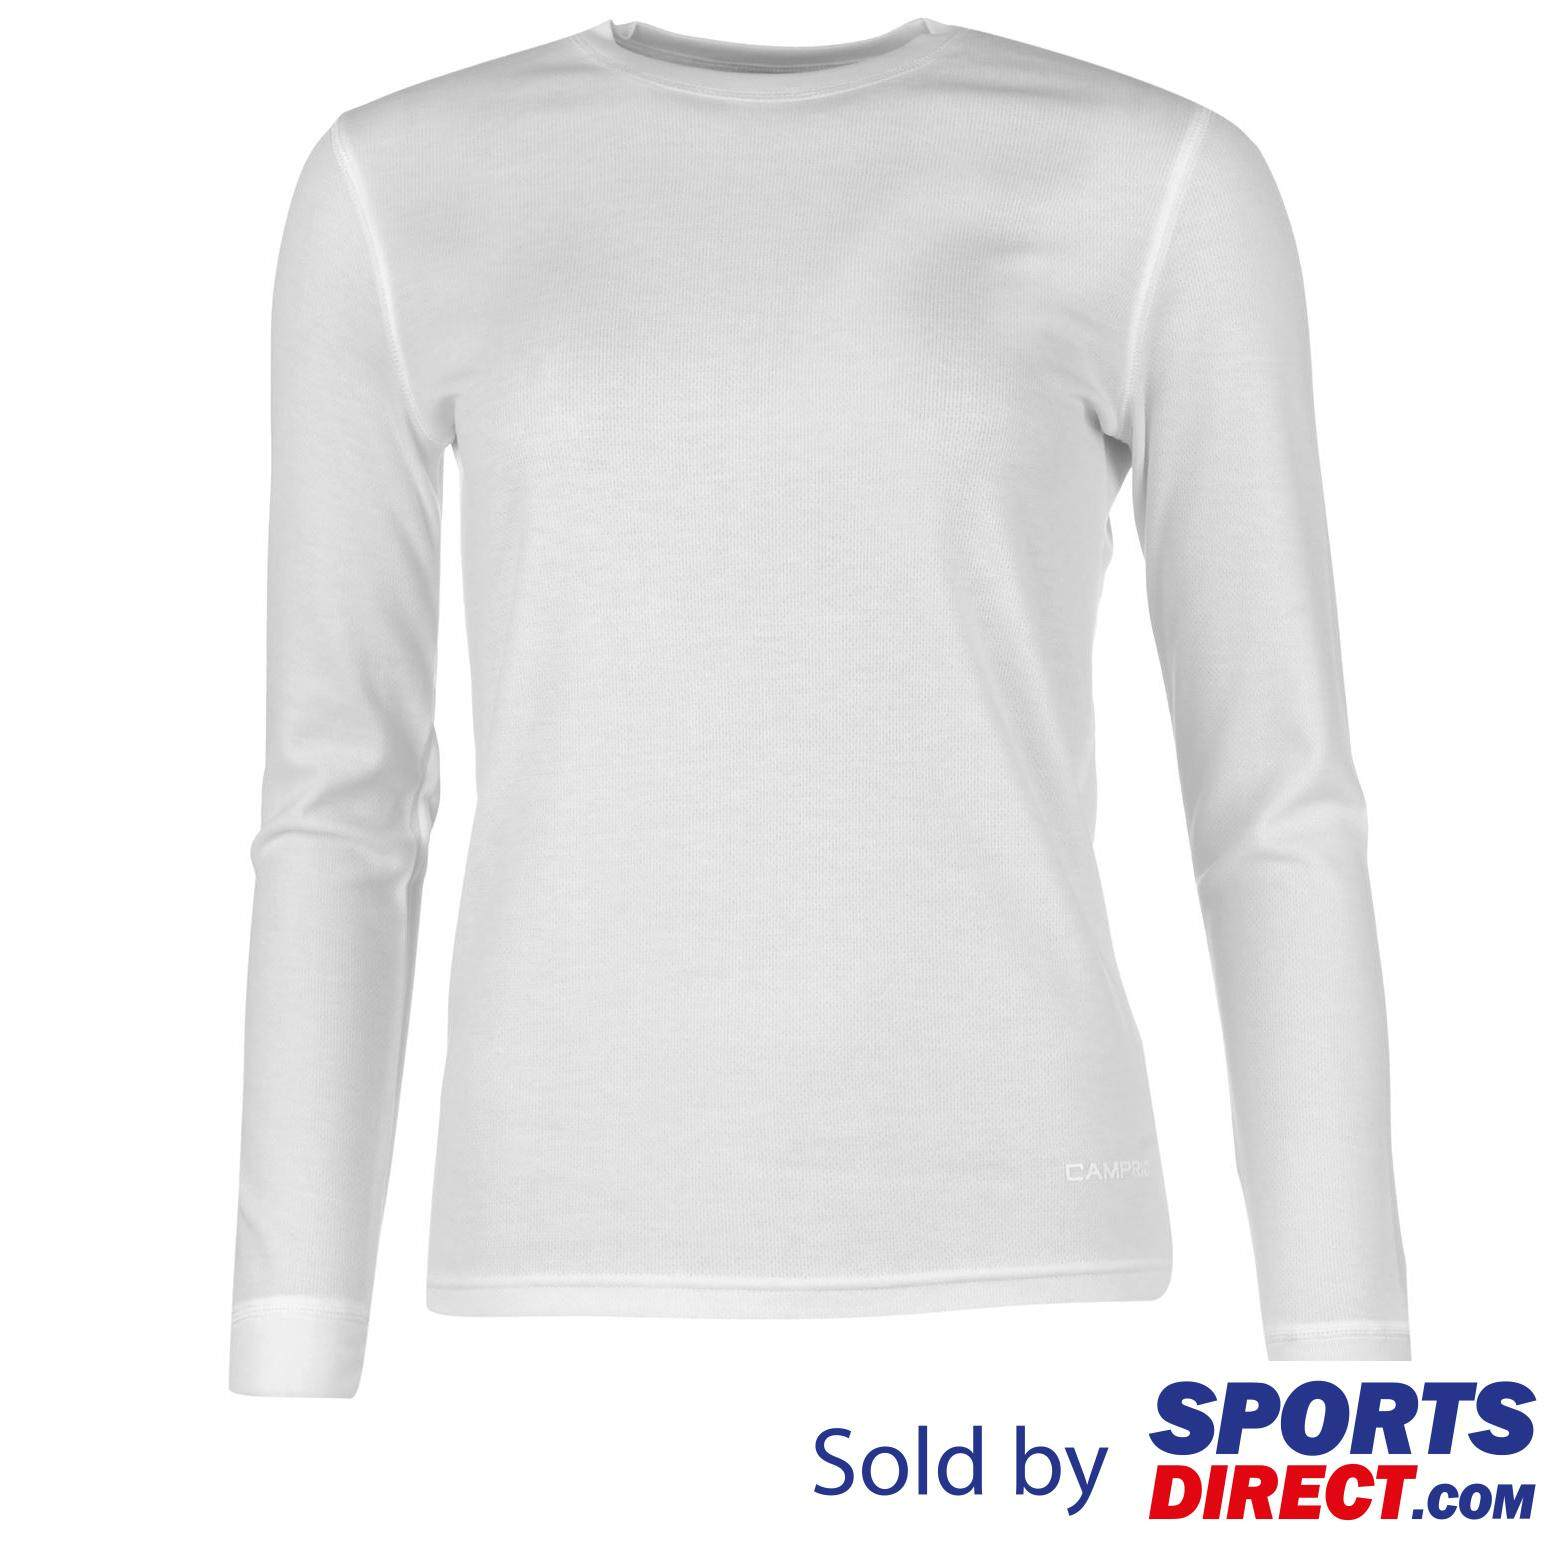 Campri Womens Thermal Top (white) By Sports Direct Mst Sdn Bhd.